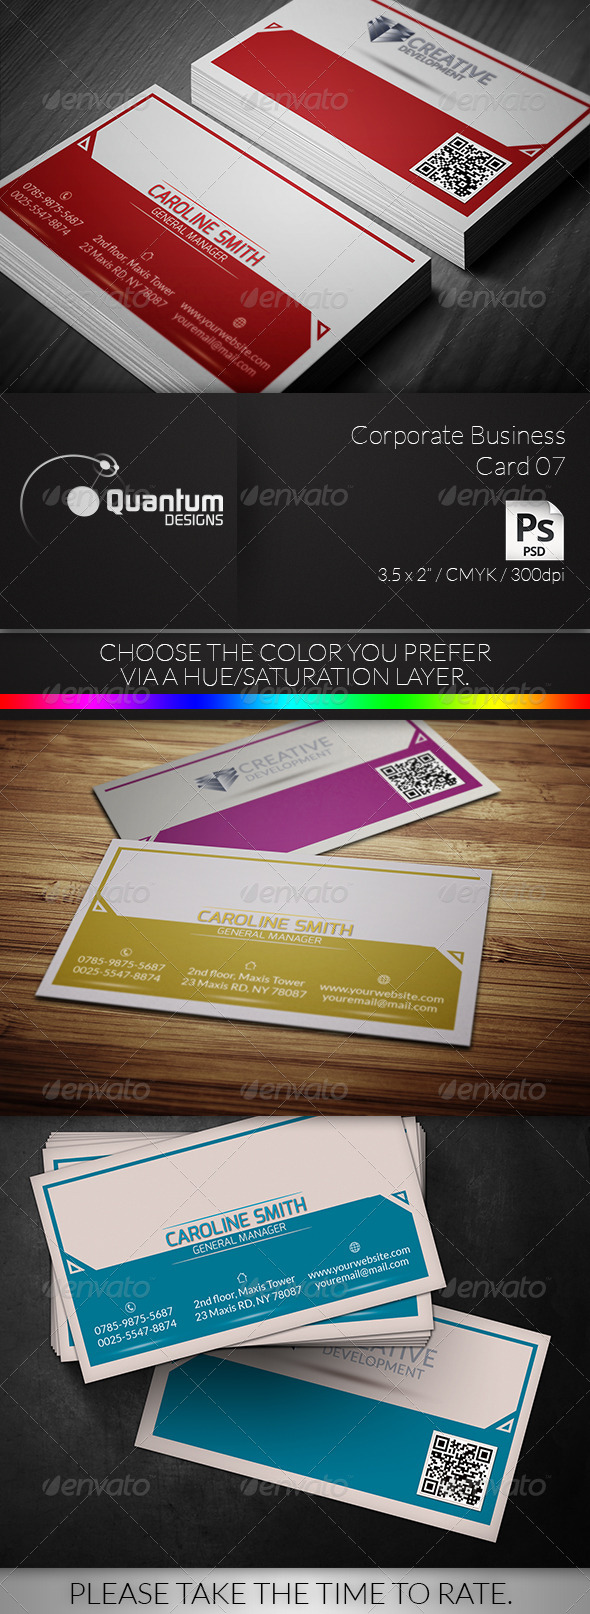 GraphicRiver Corporate Business Card 07 6279196